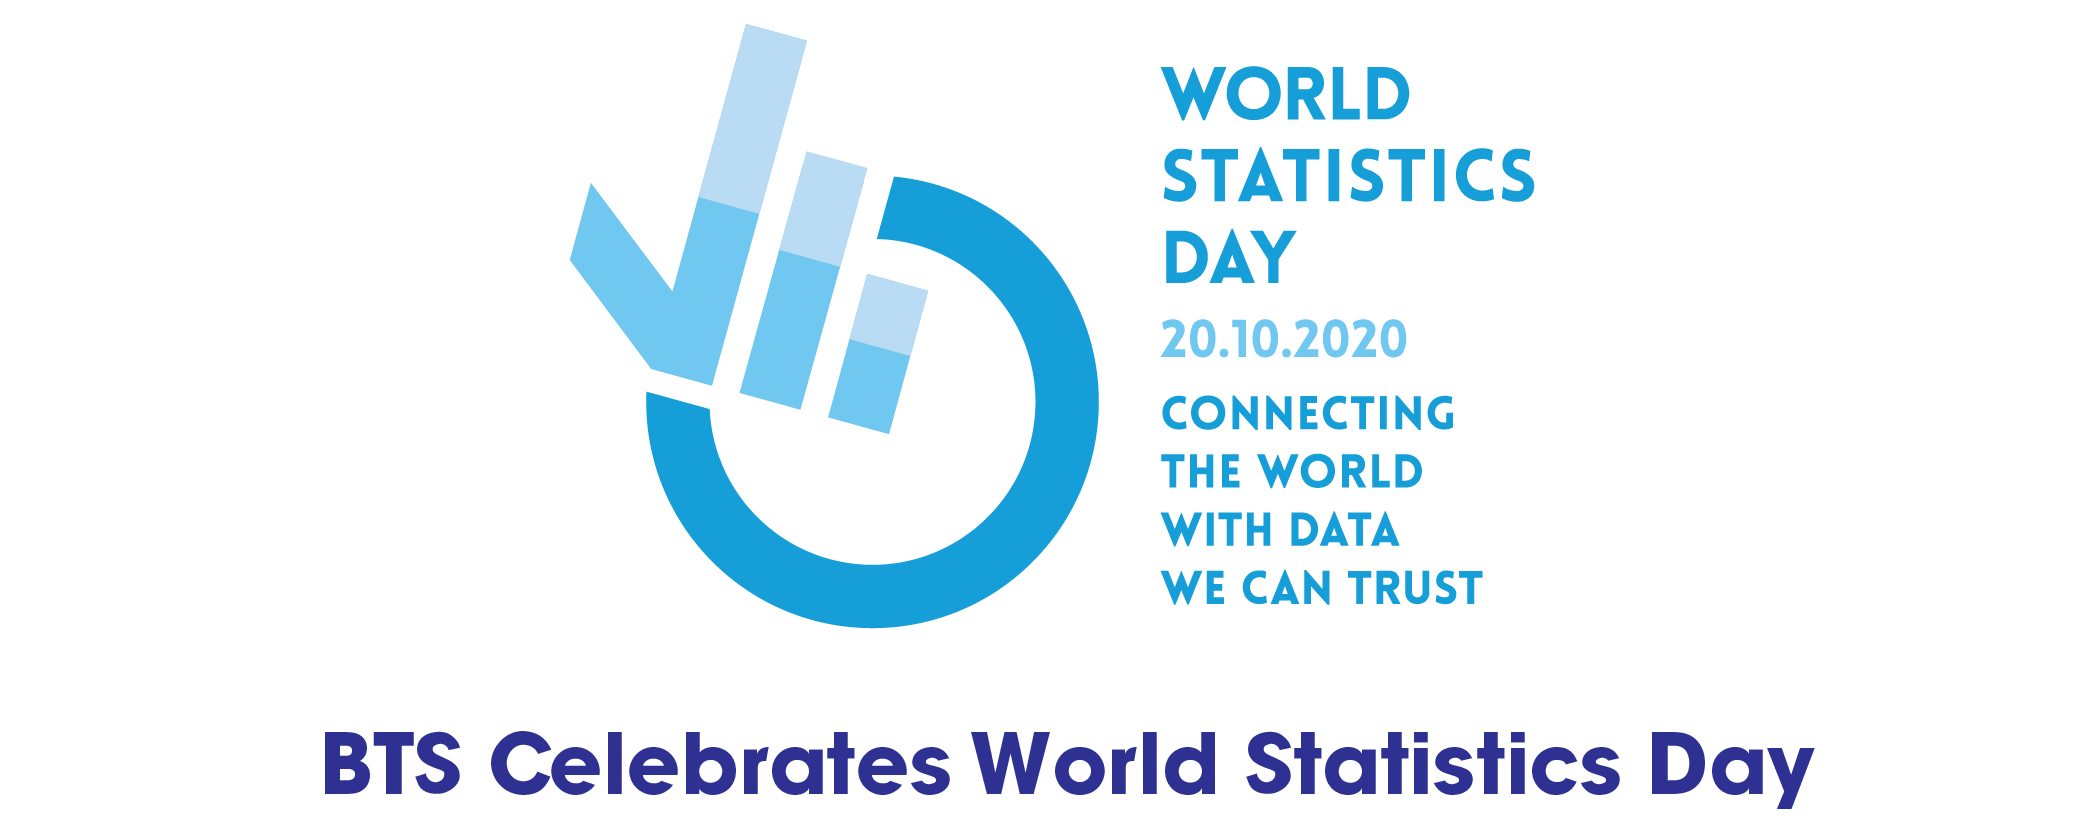 BTS celebrates World Statistics Day 2020